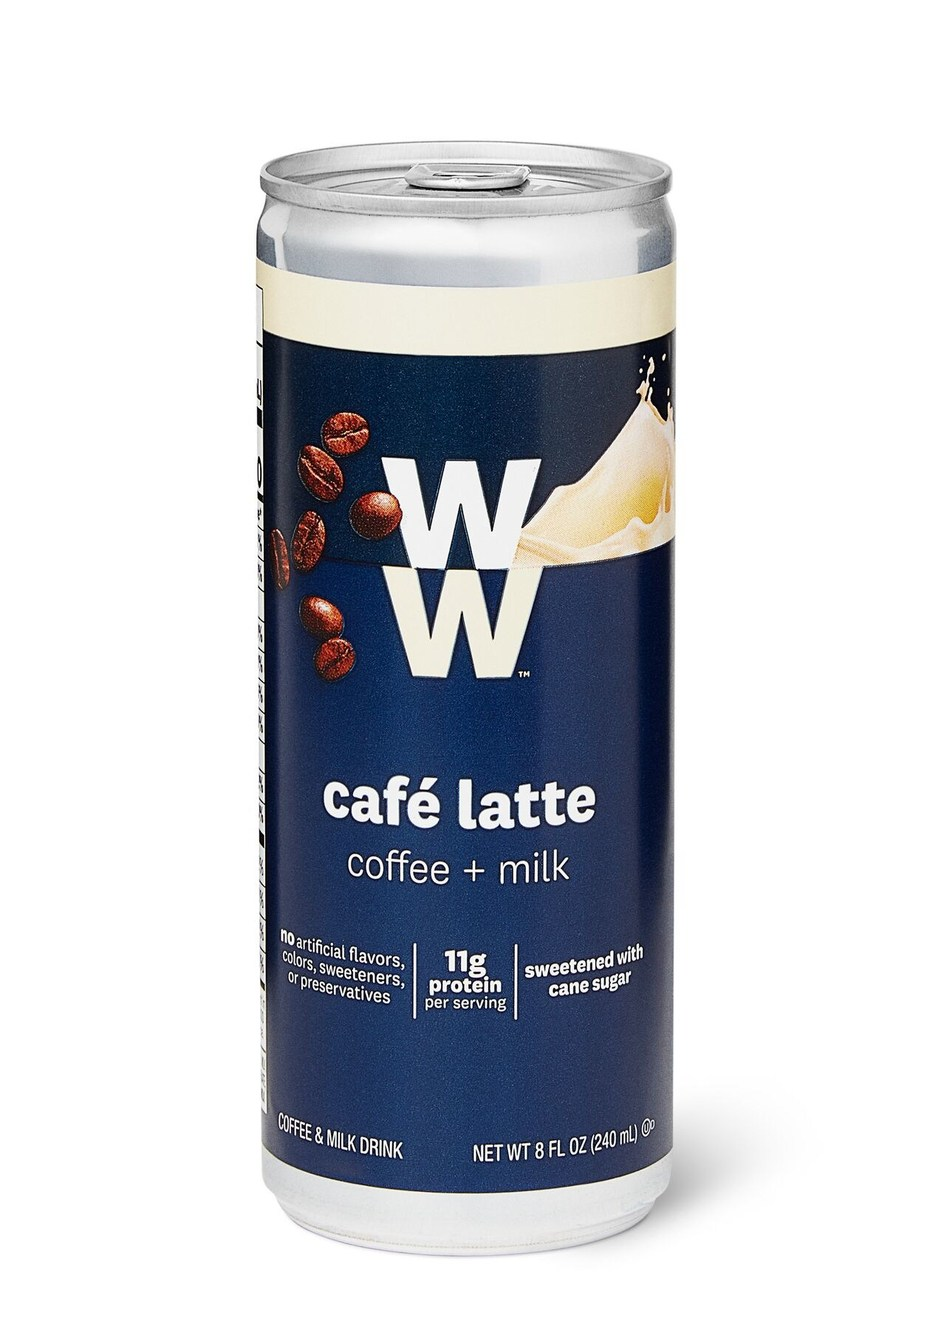 WW healthy latte